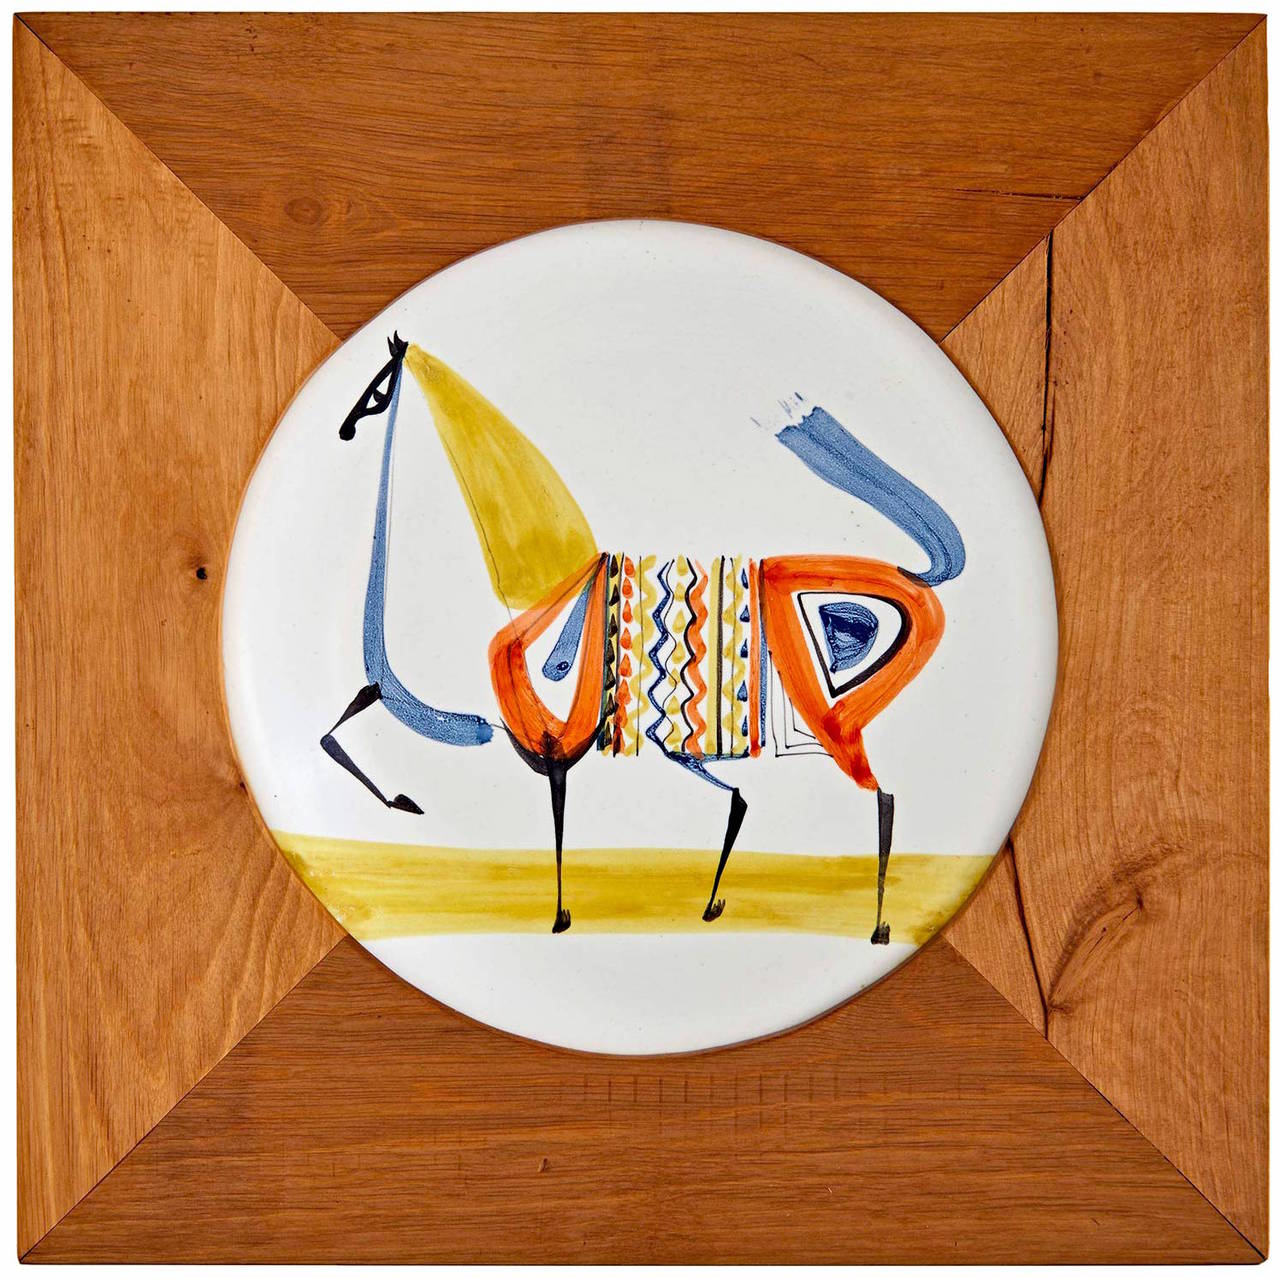 Modern Plate by Roger Capron For Sale